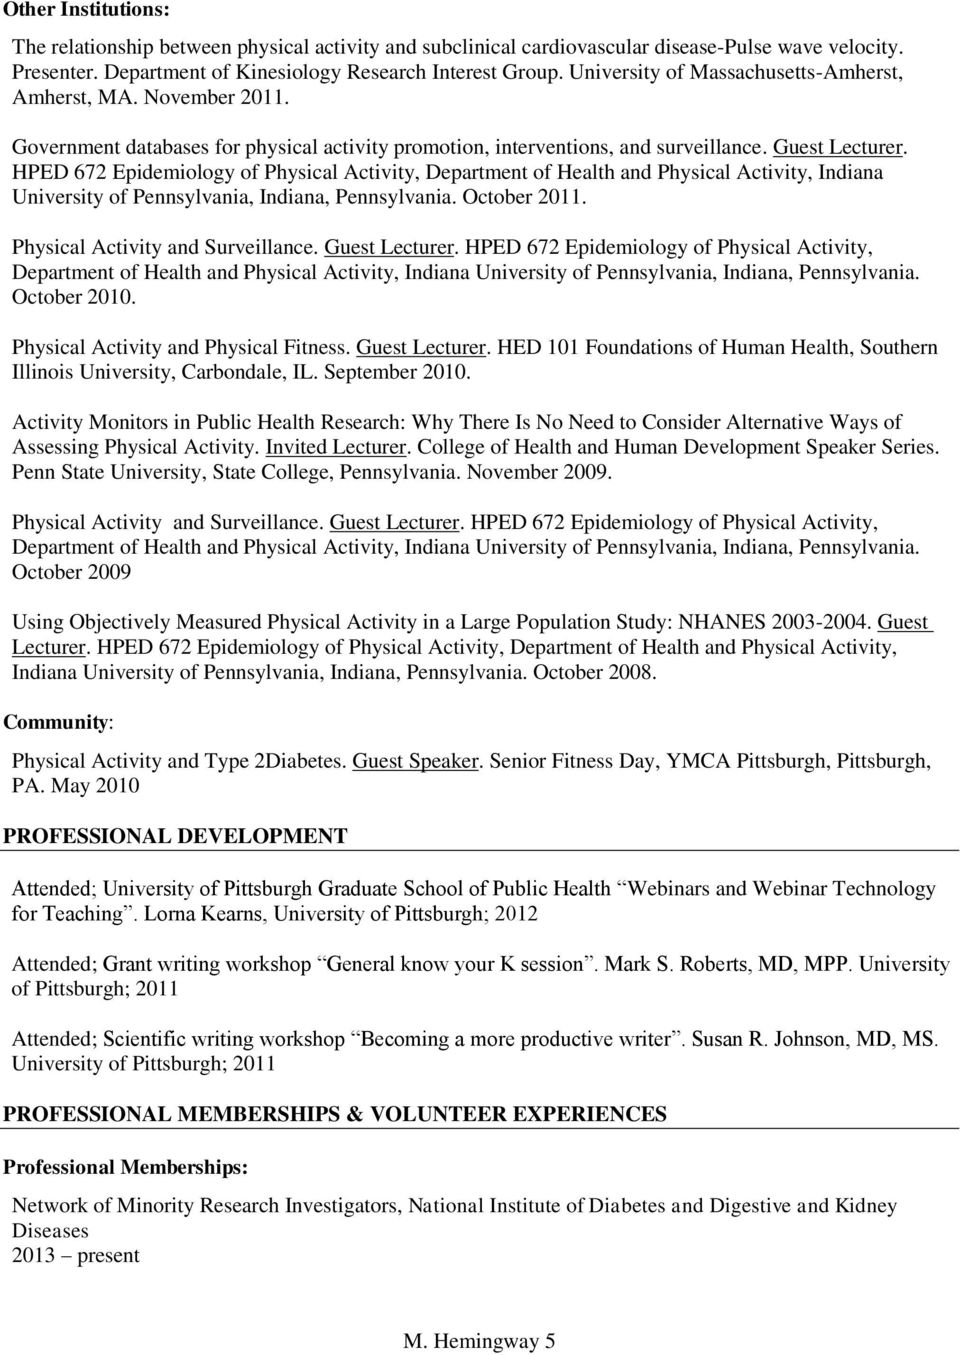 HPED 672 Epidemiology of Physical Activity, Department of Health and Physical Activity, Indiana University of Pennsylvania, Indiana, Pennsylvania. October 2011. Physical Activity and Surveillance.